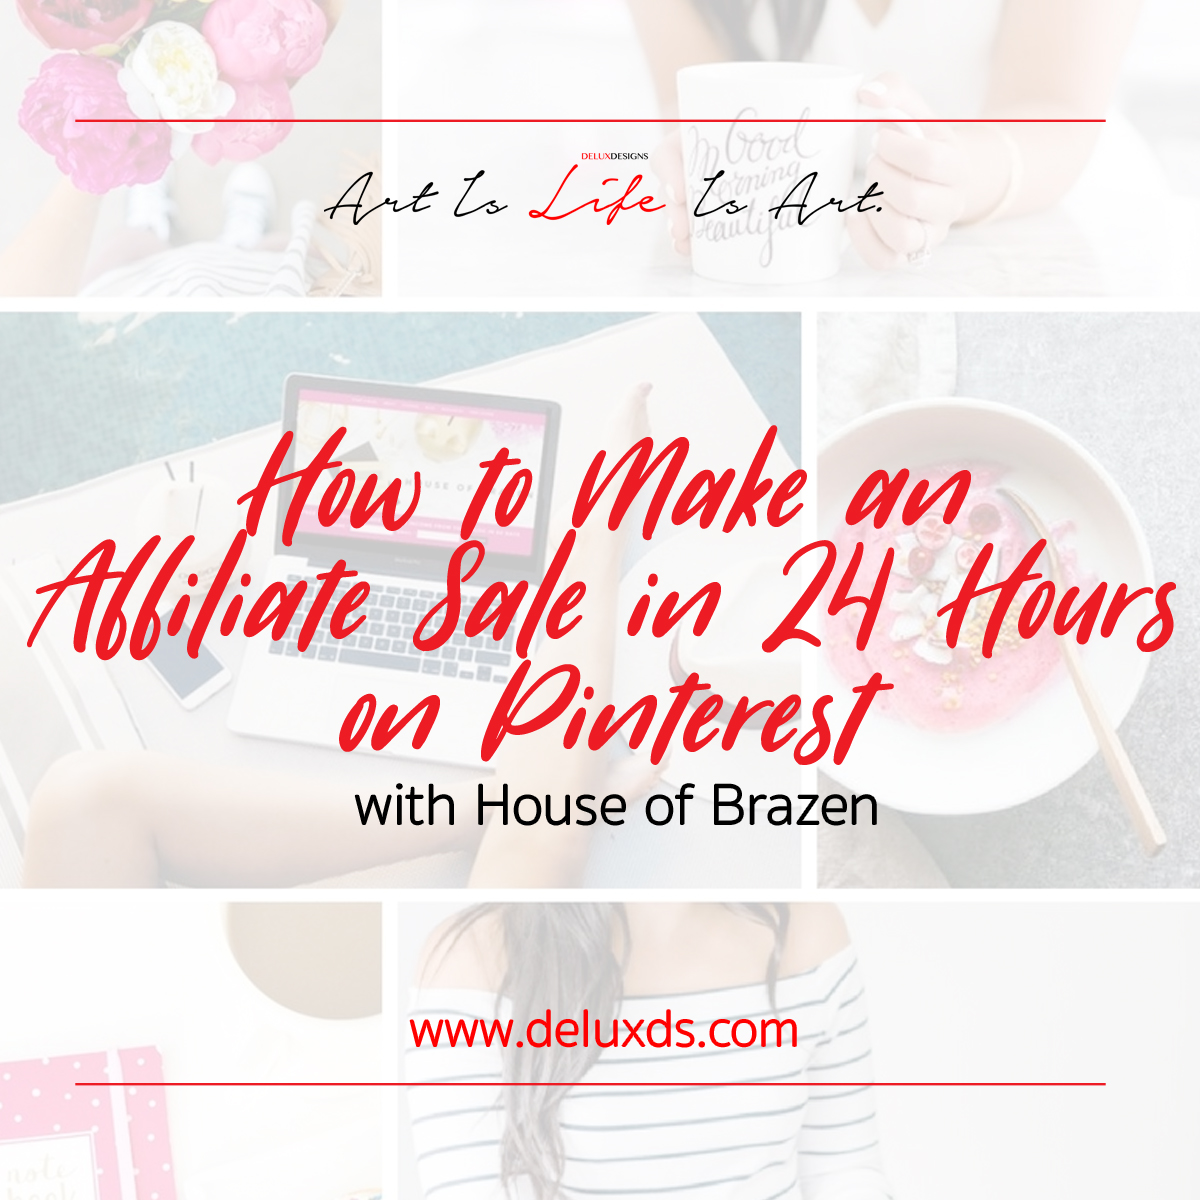 How to Make an Affiliate Sale in 24 Hours on Pinterest with House of Brazen